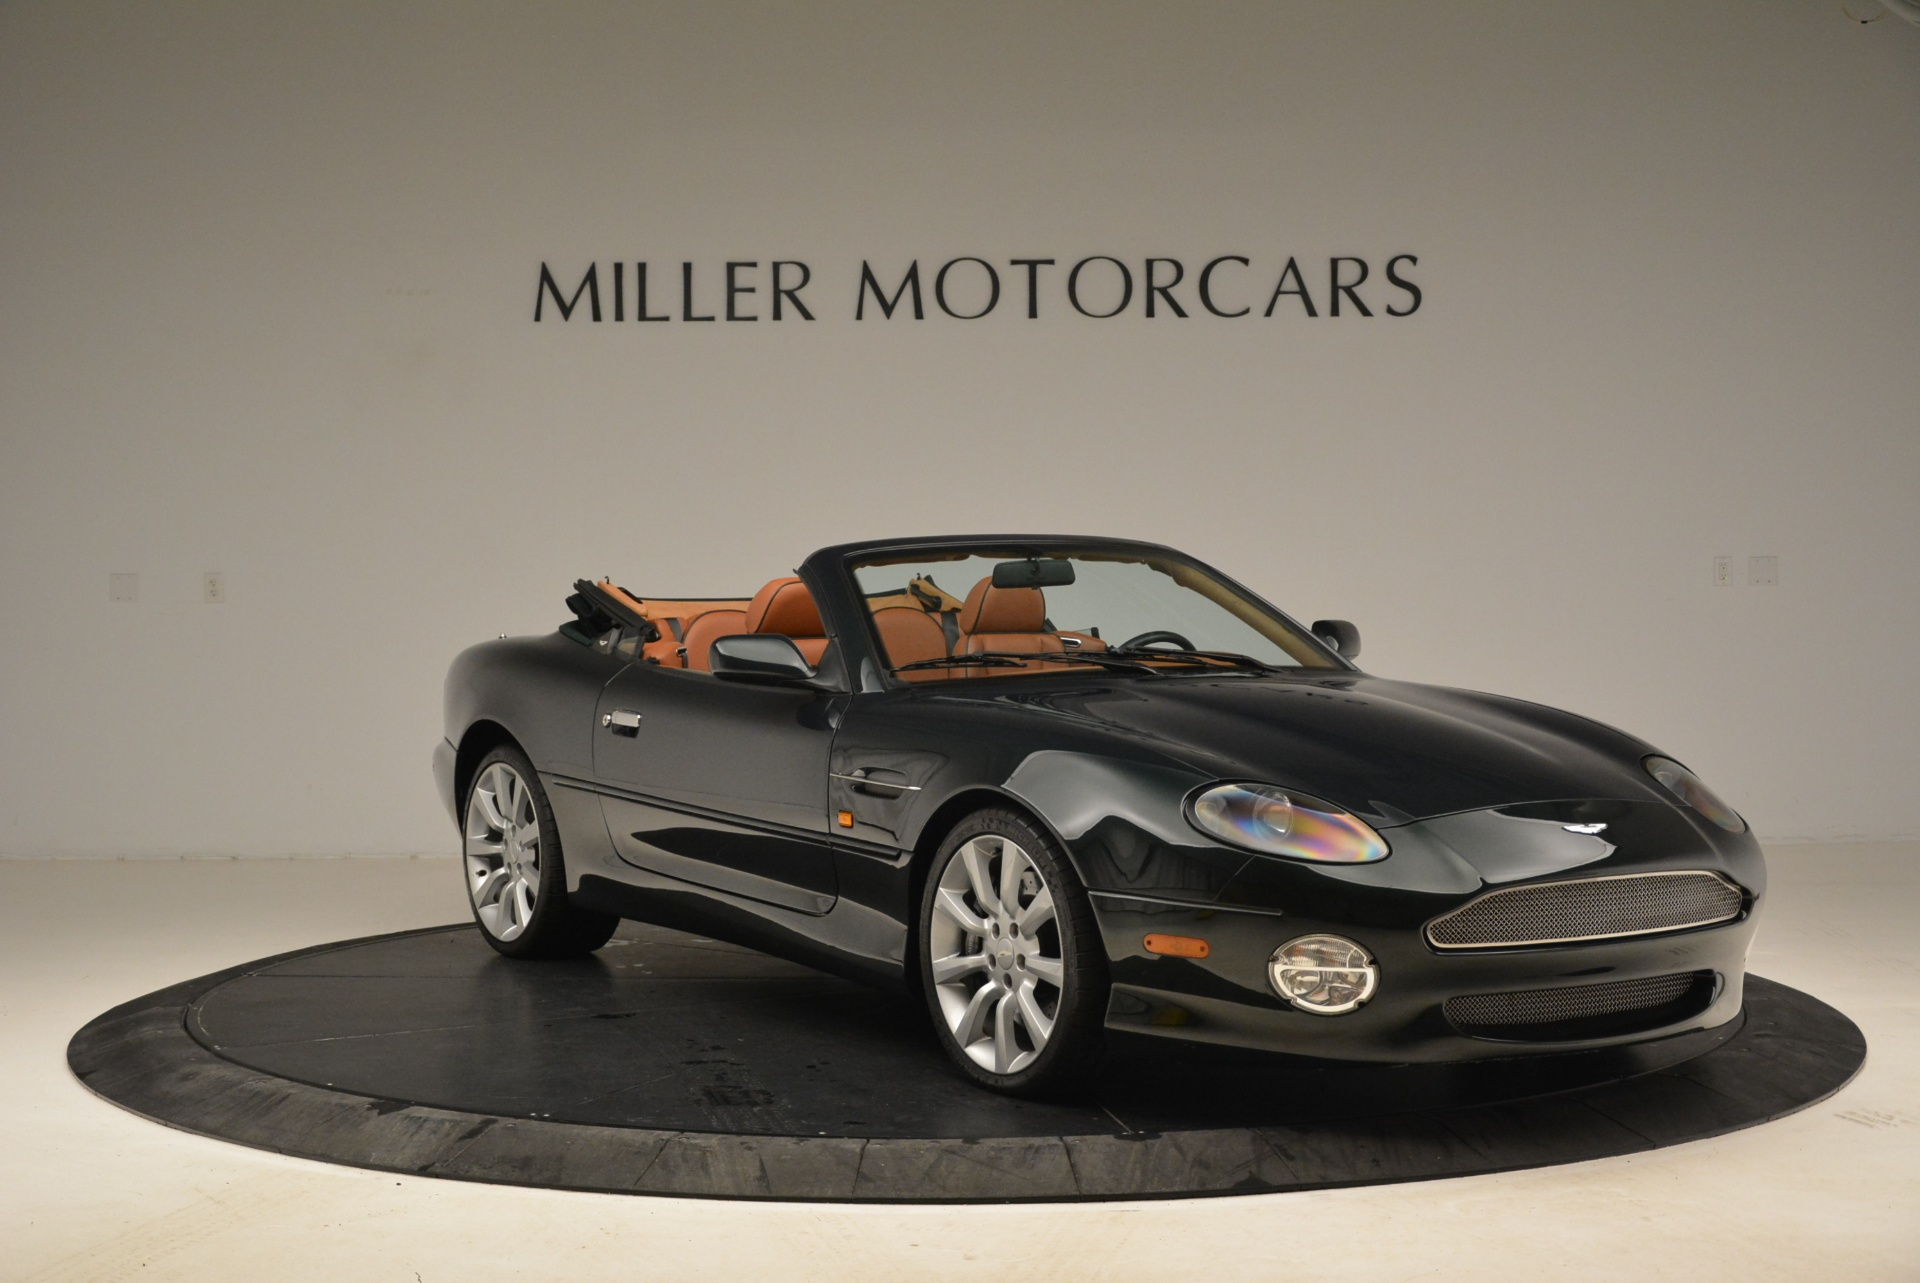 Used 2003 Aston Martin DB7 Vantage Volante For Sale In Westport, CT 2084_p11